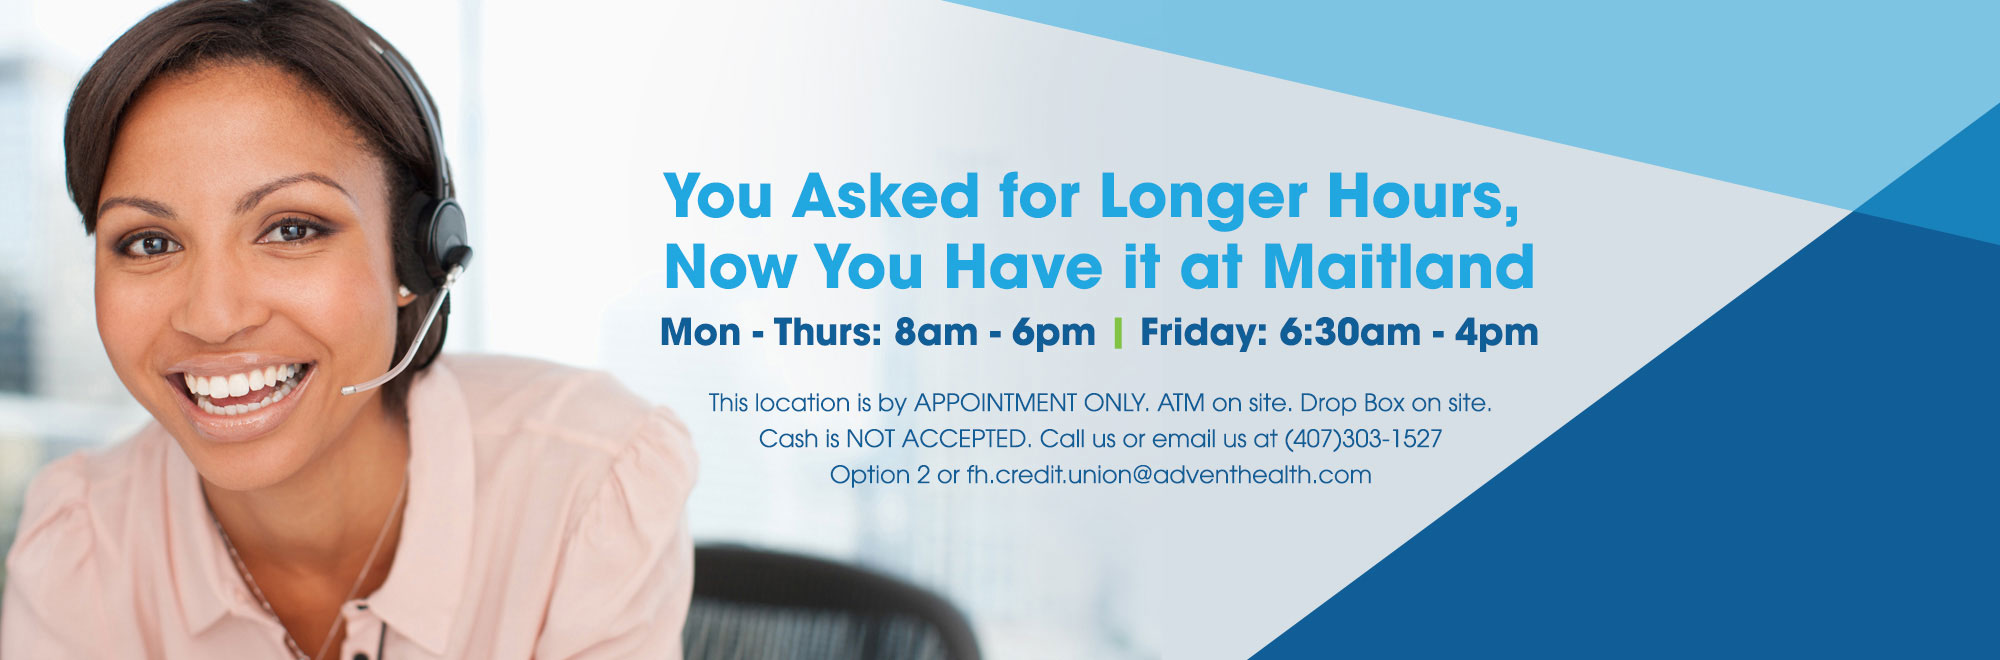 Service credit union 24 hour number